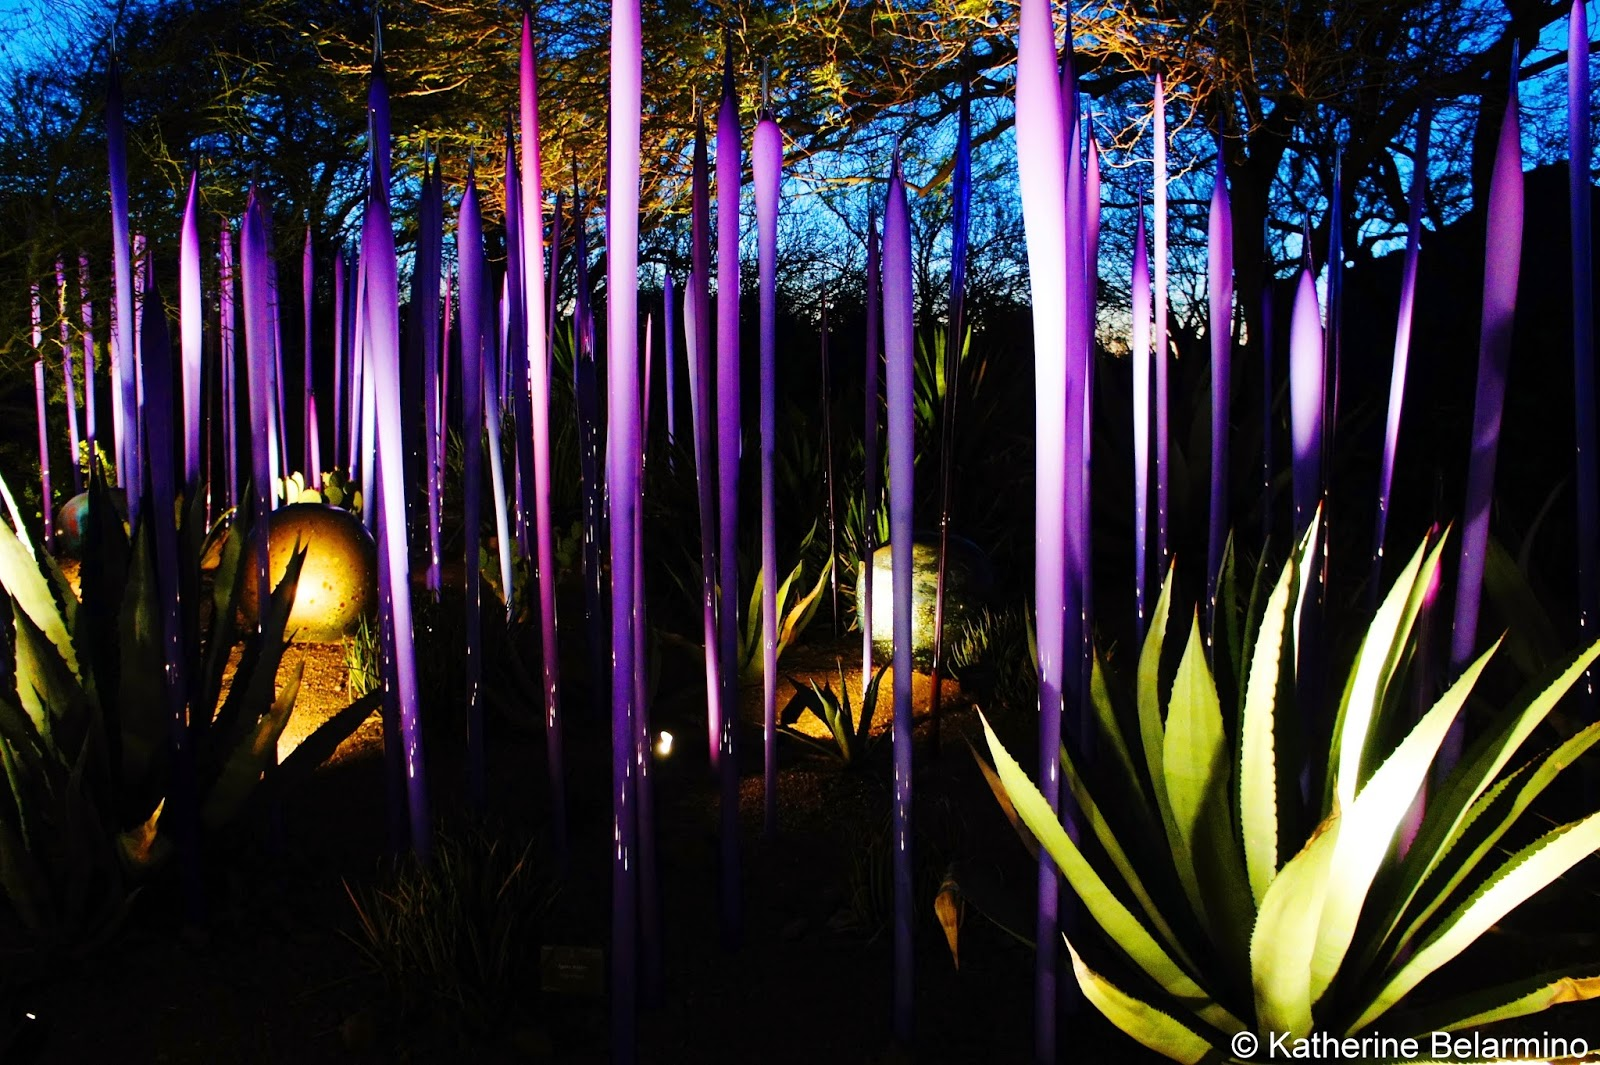 Dale Chihuly Neodymium Reeds and Black Niijima Floats Desert Botanical Garden Phoenix Arizona